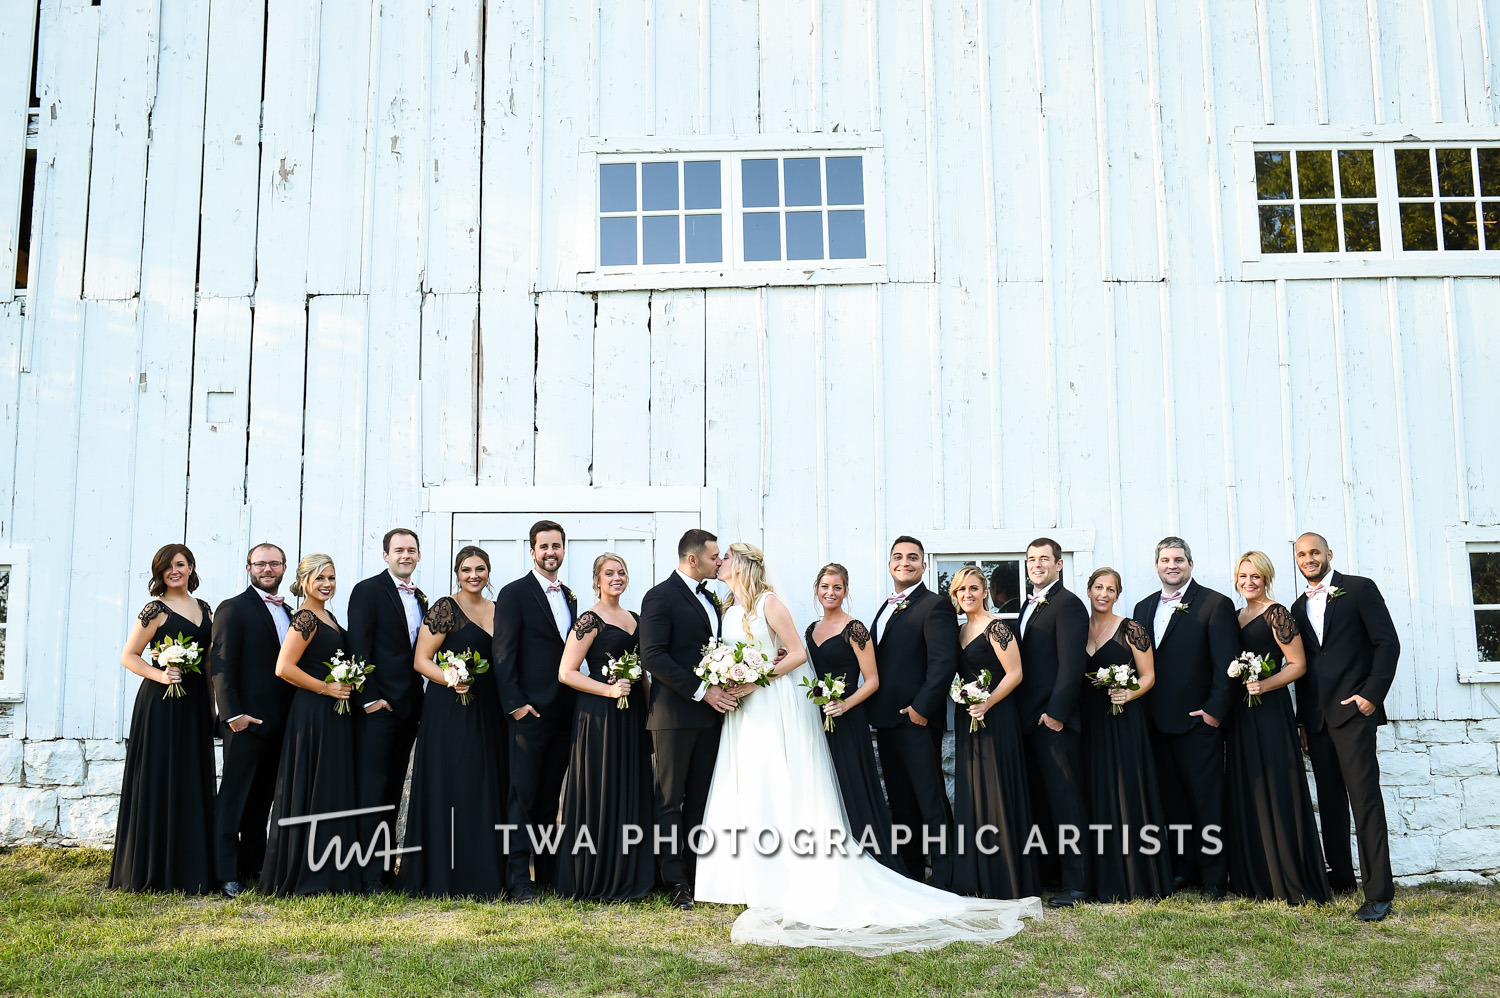 Chicago-Wedding-Photographer-TWA-Photographic-Artists-Private-Residence_Howes_Koczmara_SR_TL-0637